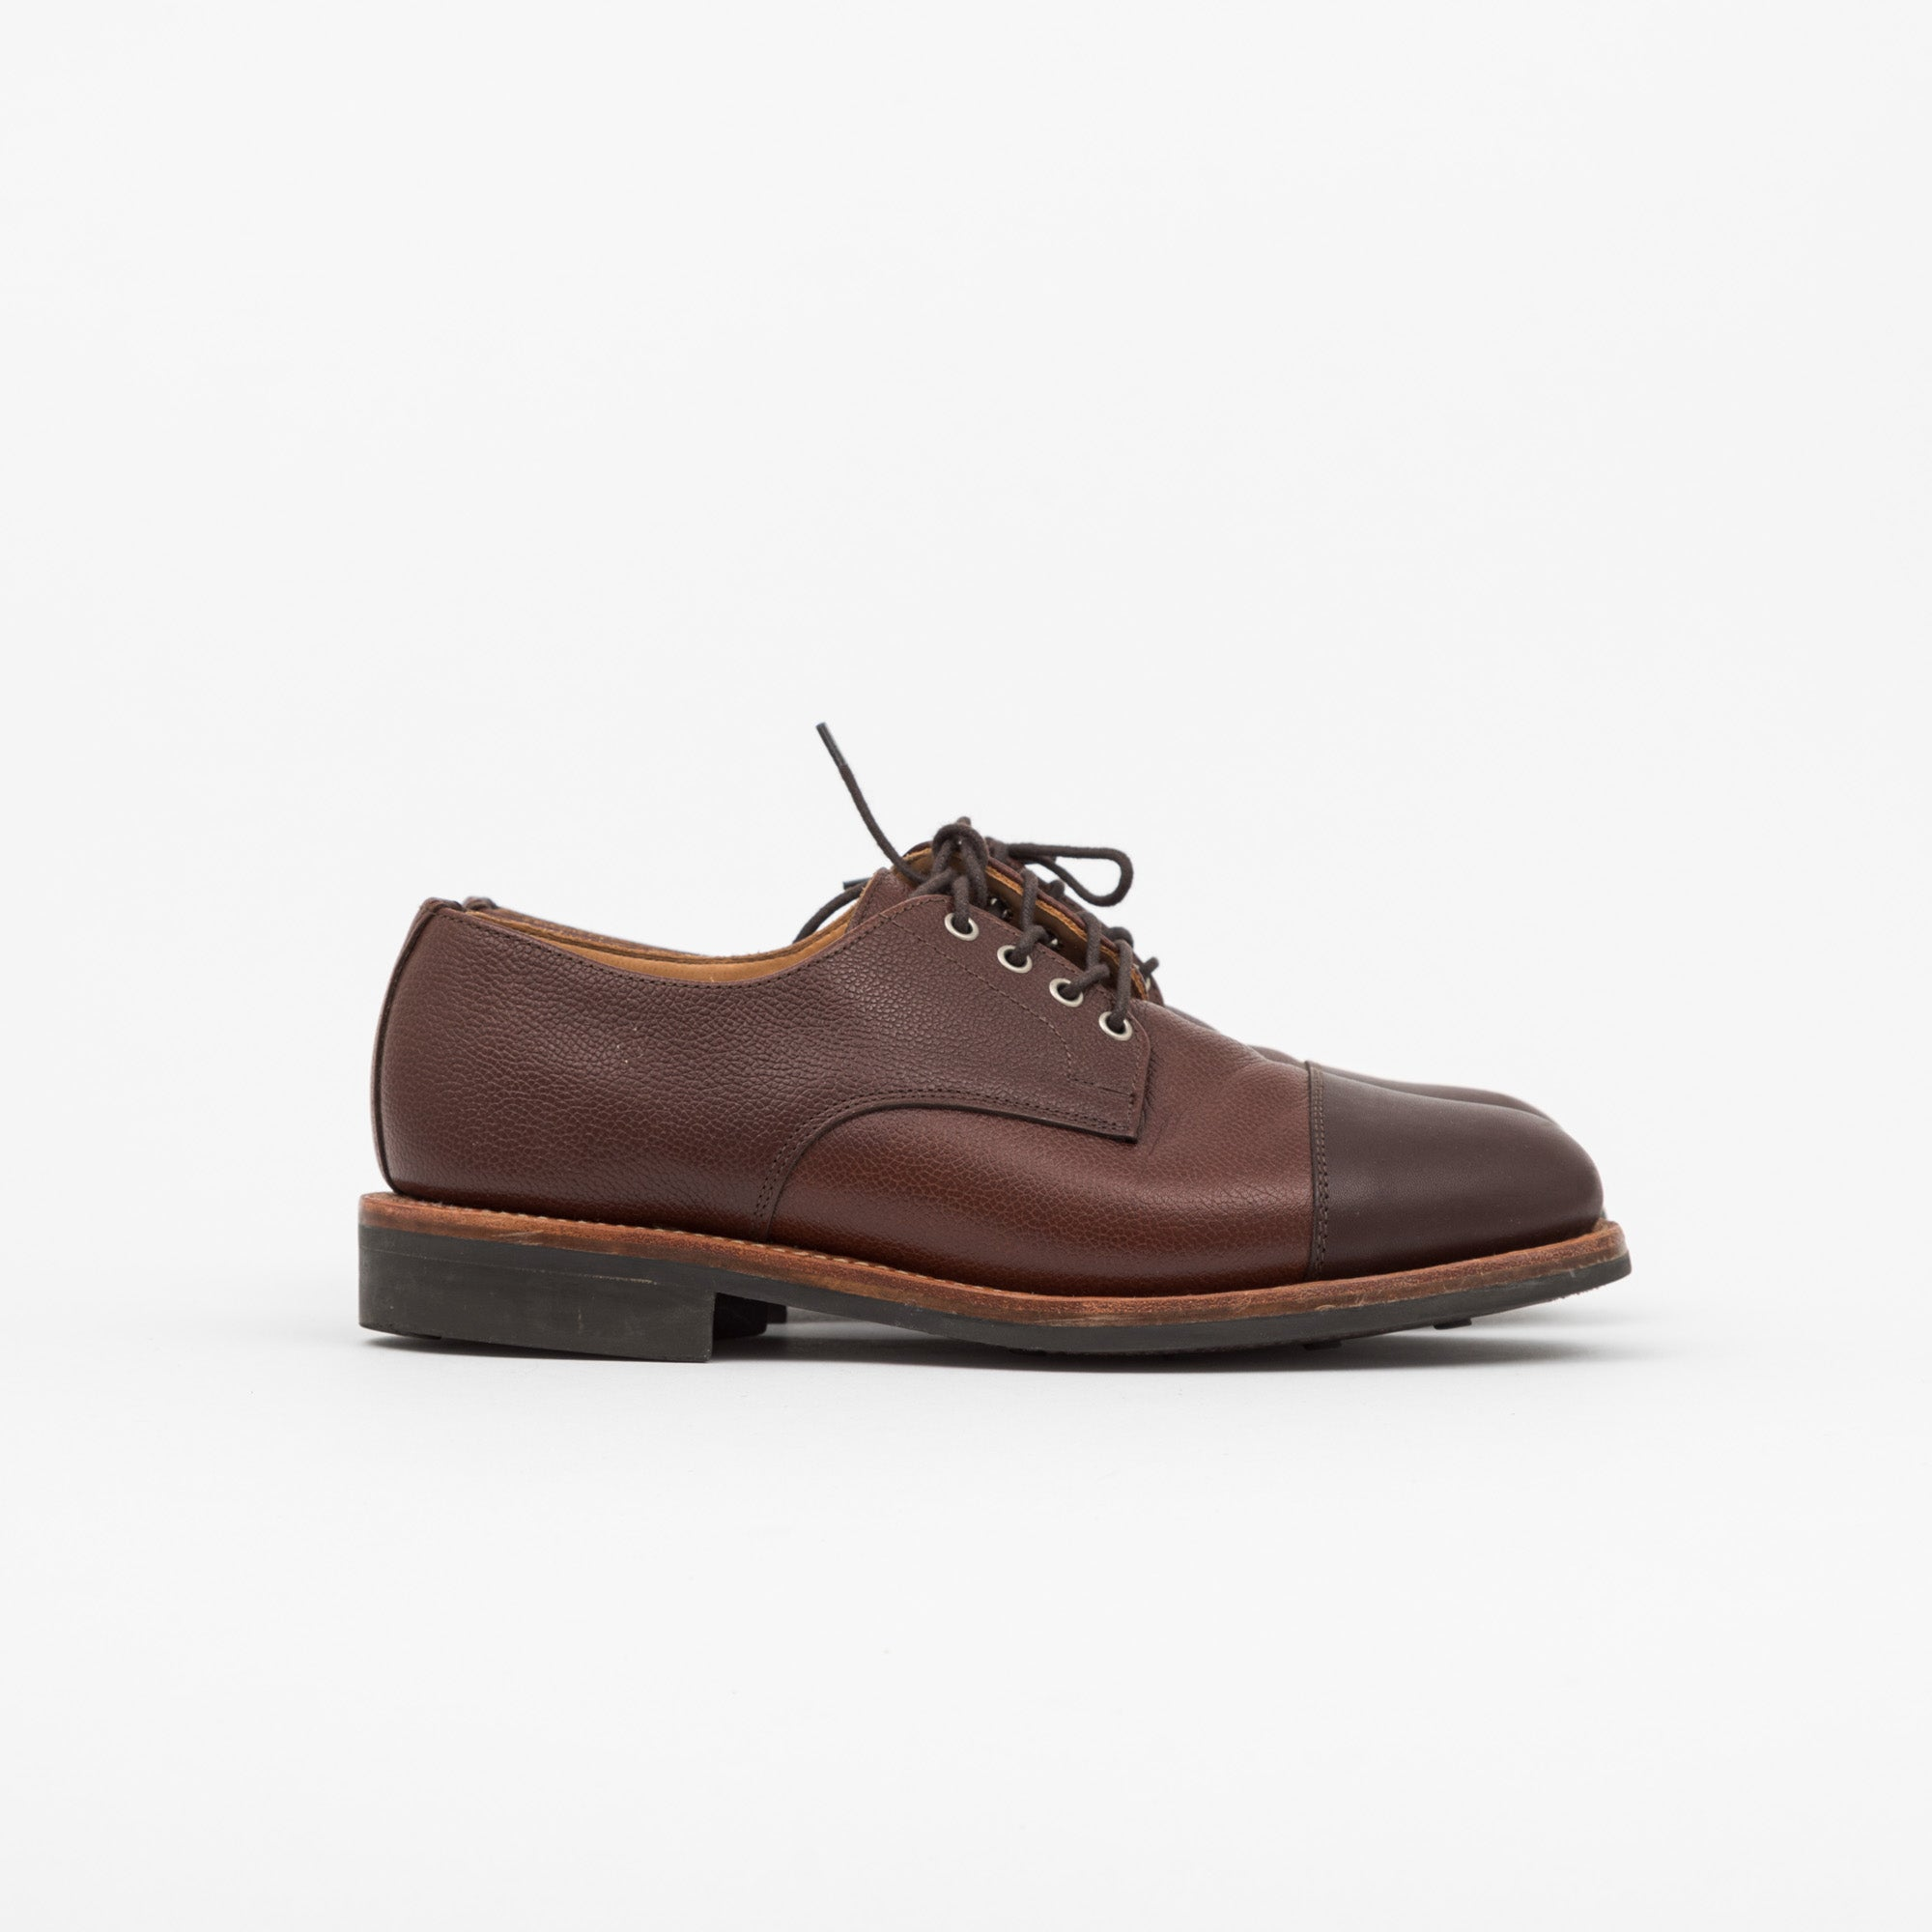 Oliver Spencer Derby Shoes